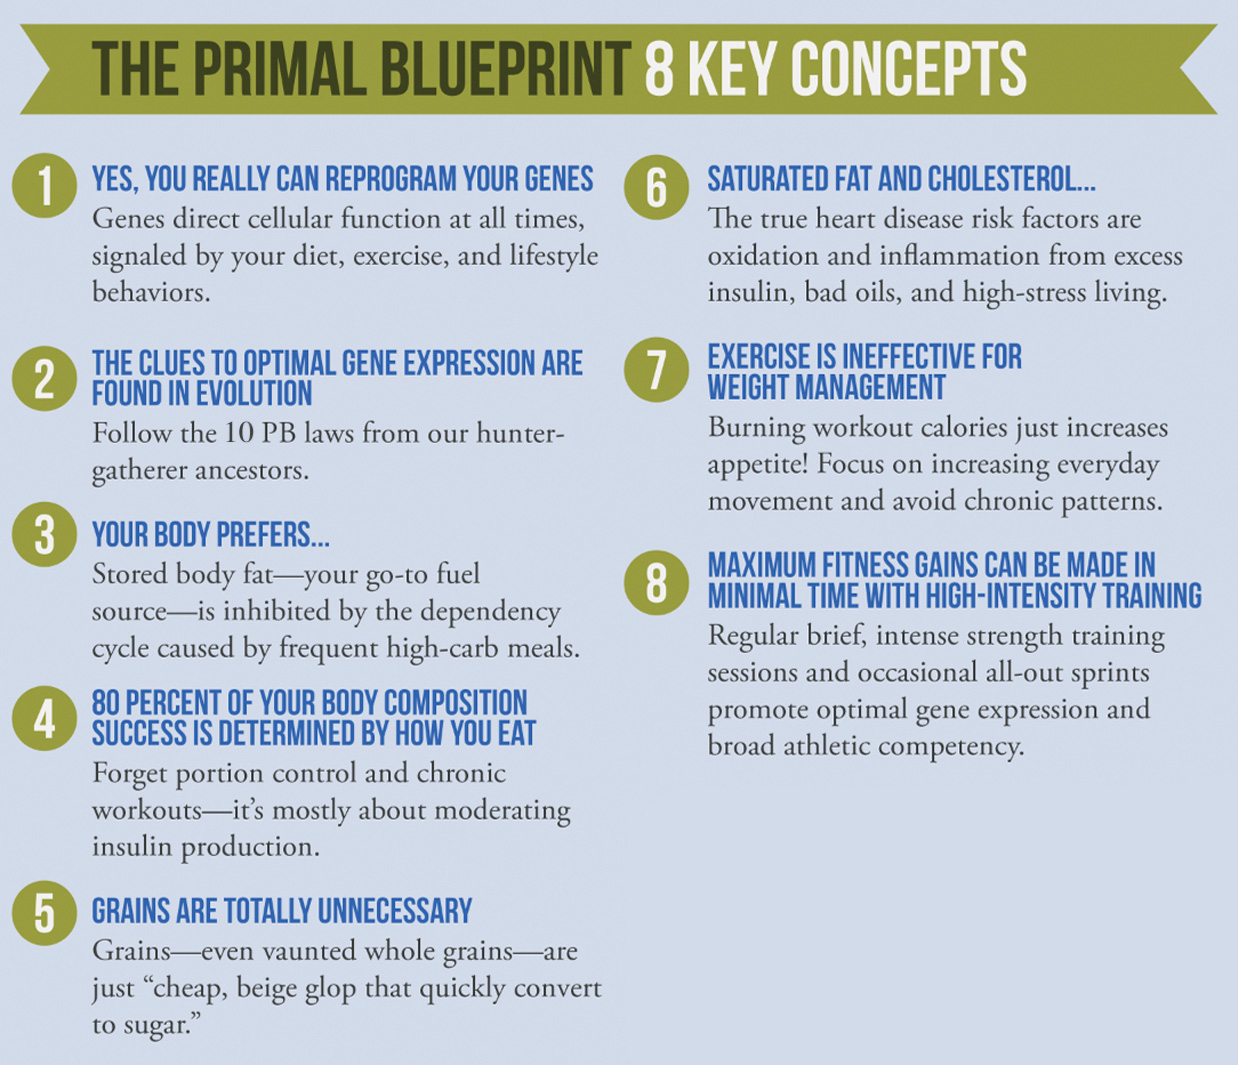 Mark Sisson Diet what is the primal blueprint?